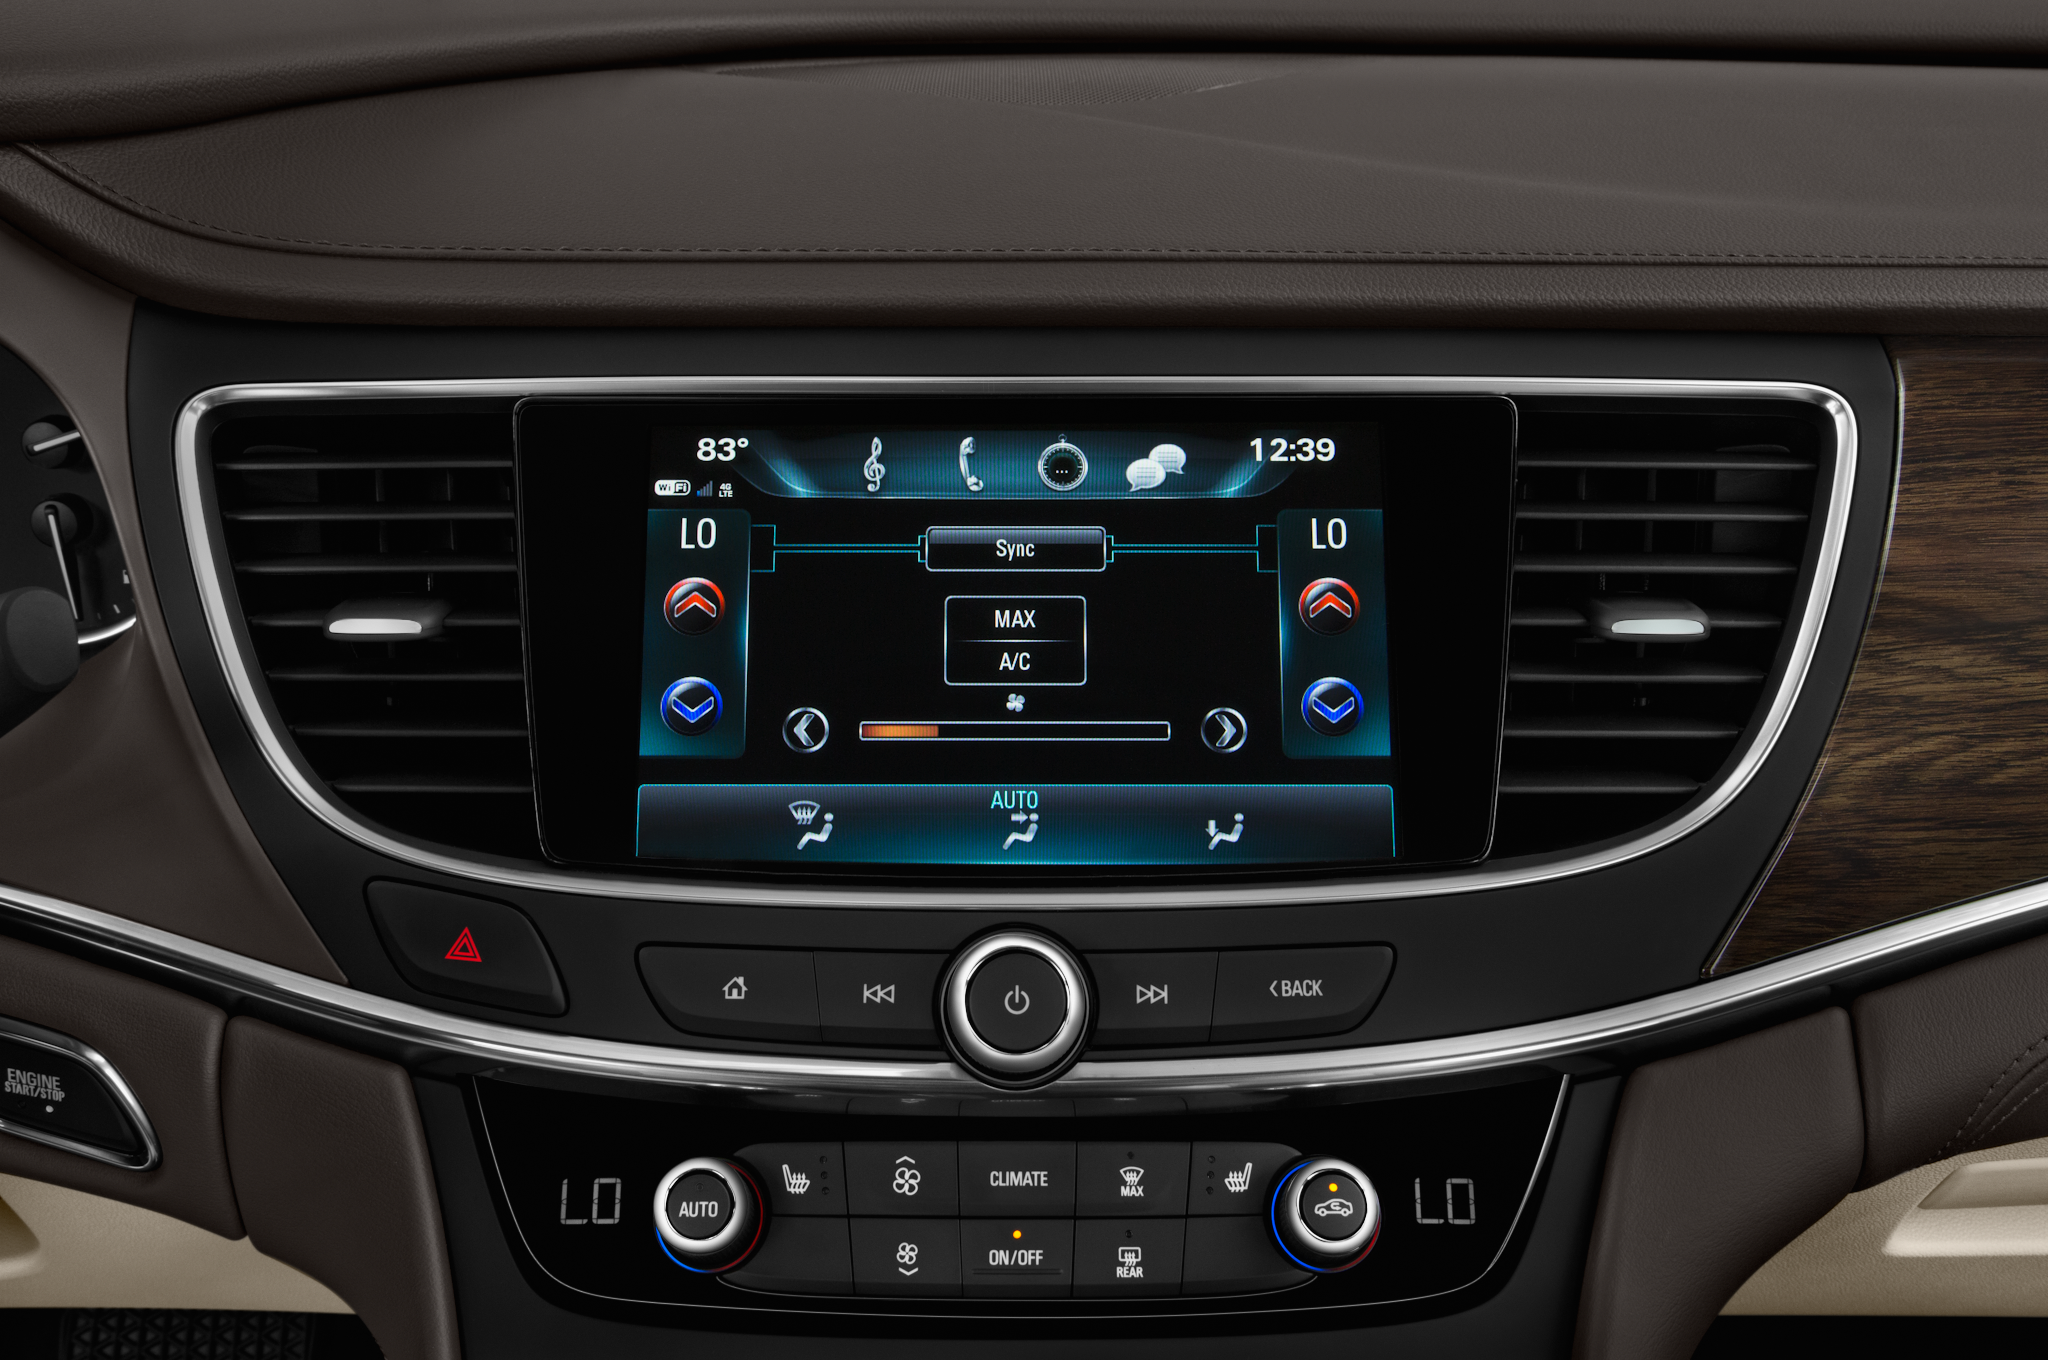 Buick LaCrosse: Control Buttons